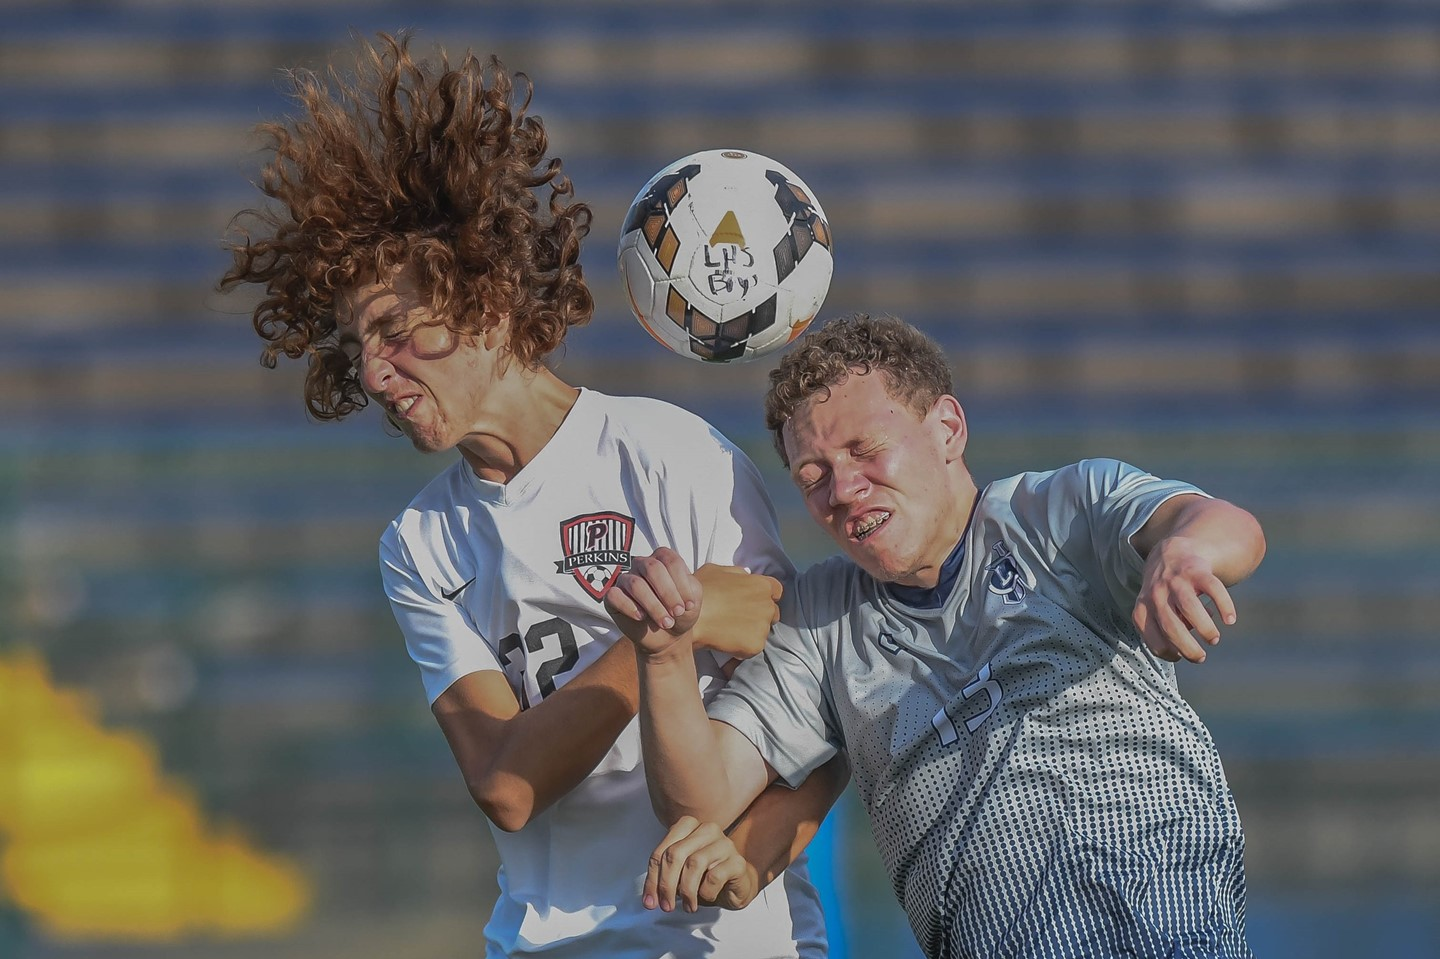 A Titans soccer player heads the ball